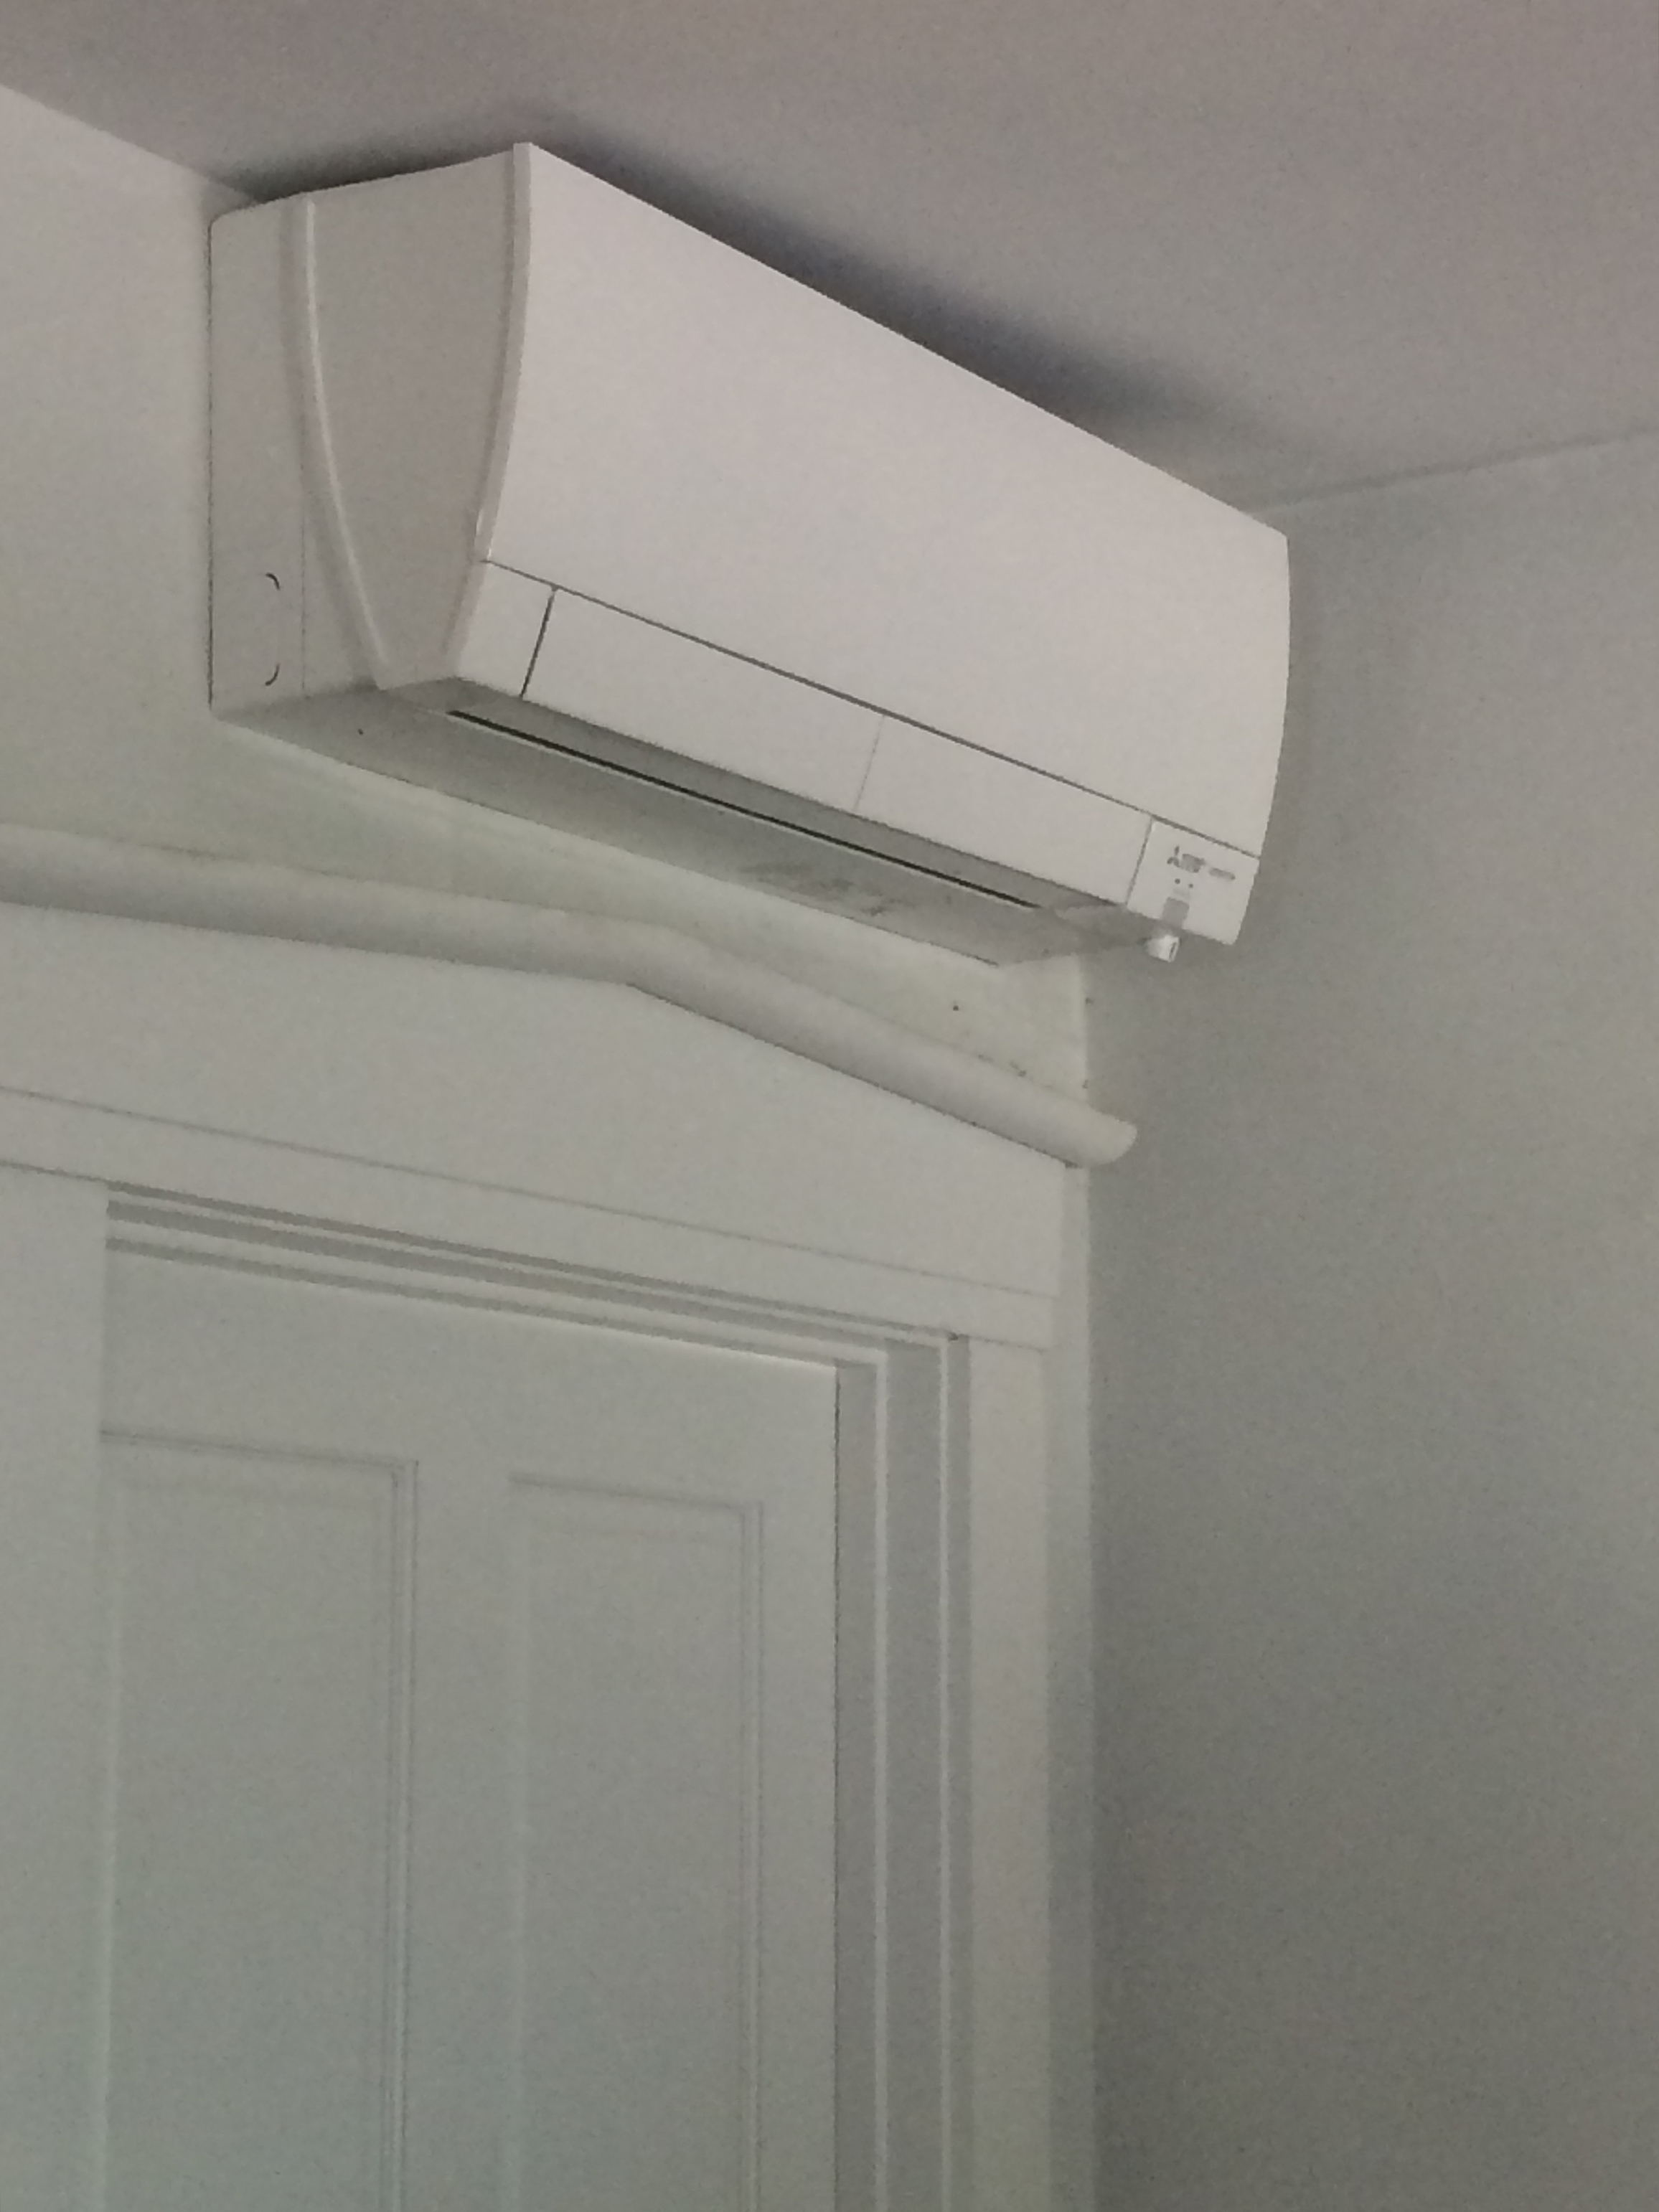 Wall Mounted MSHP at A3 Architect's Office